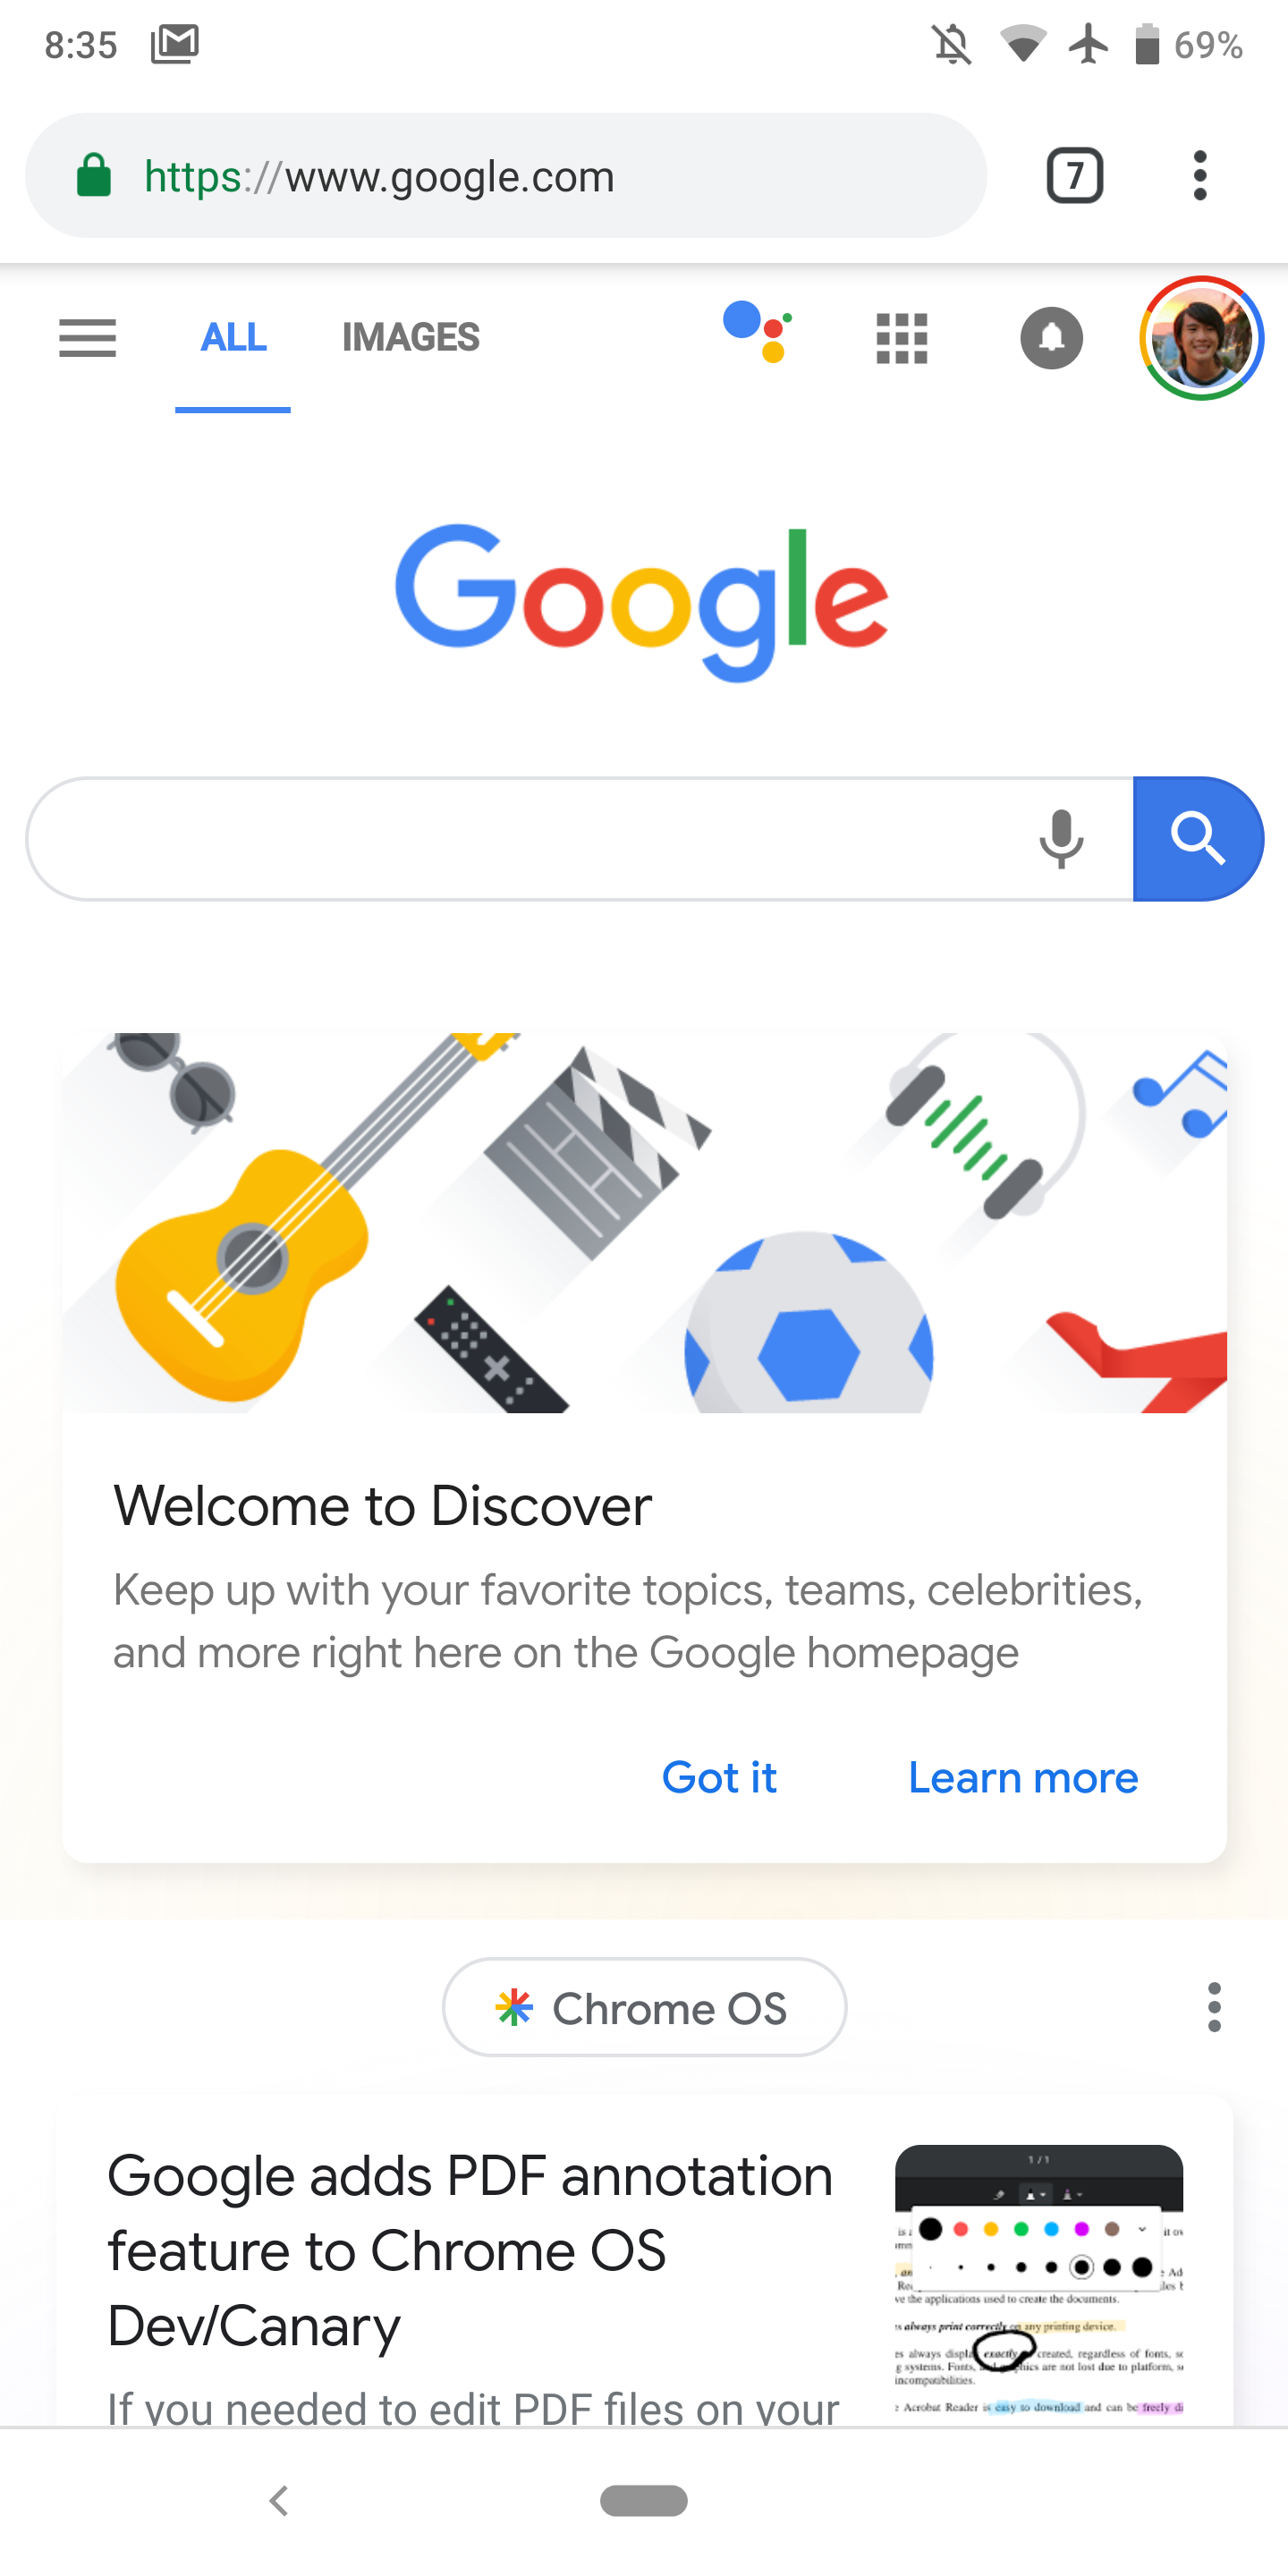 https://9to5google.com/wp-content/uploads/sites/4/2019/02/google-assistant-shortcut-search-homepage-1.png